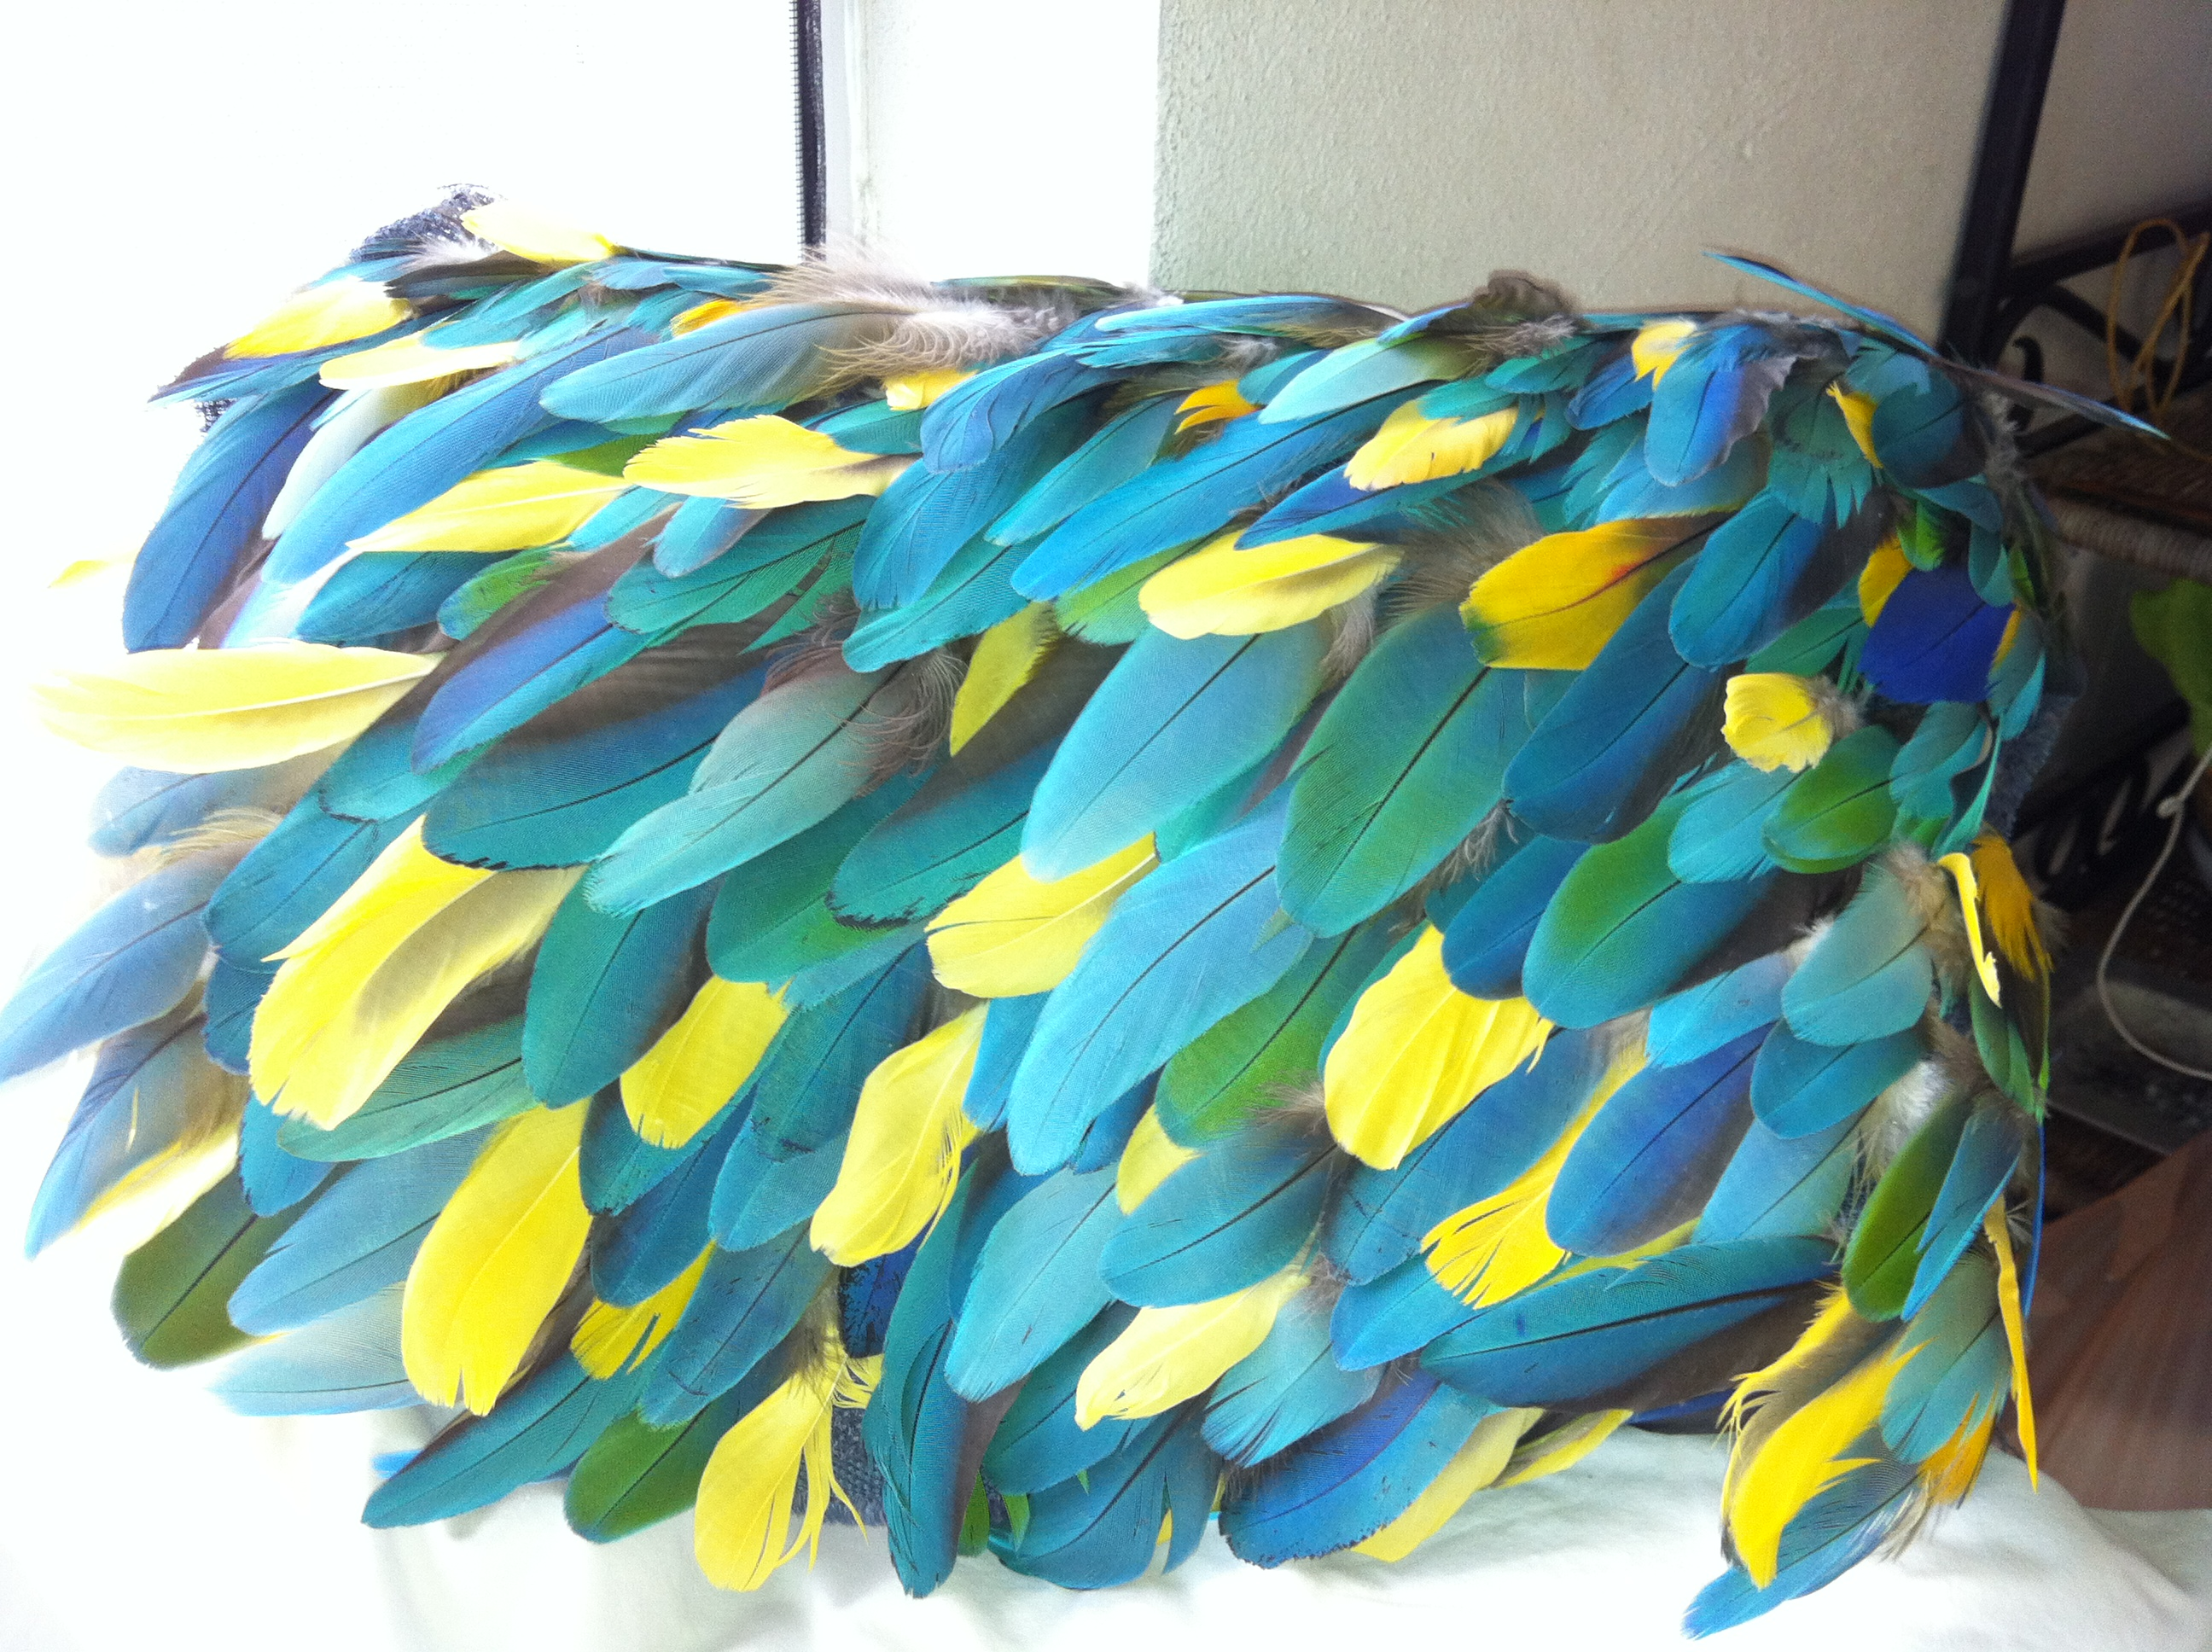 Parrot feathers - photo#14